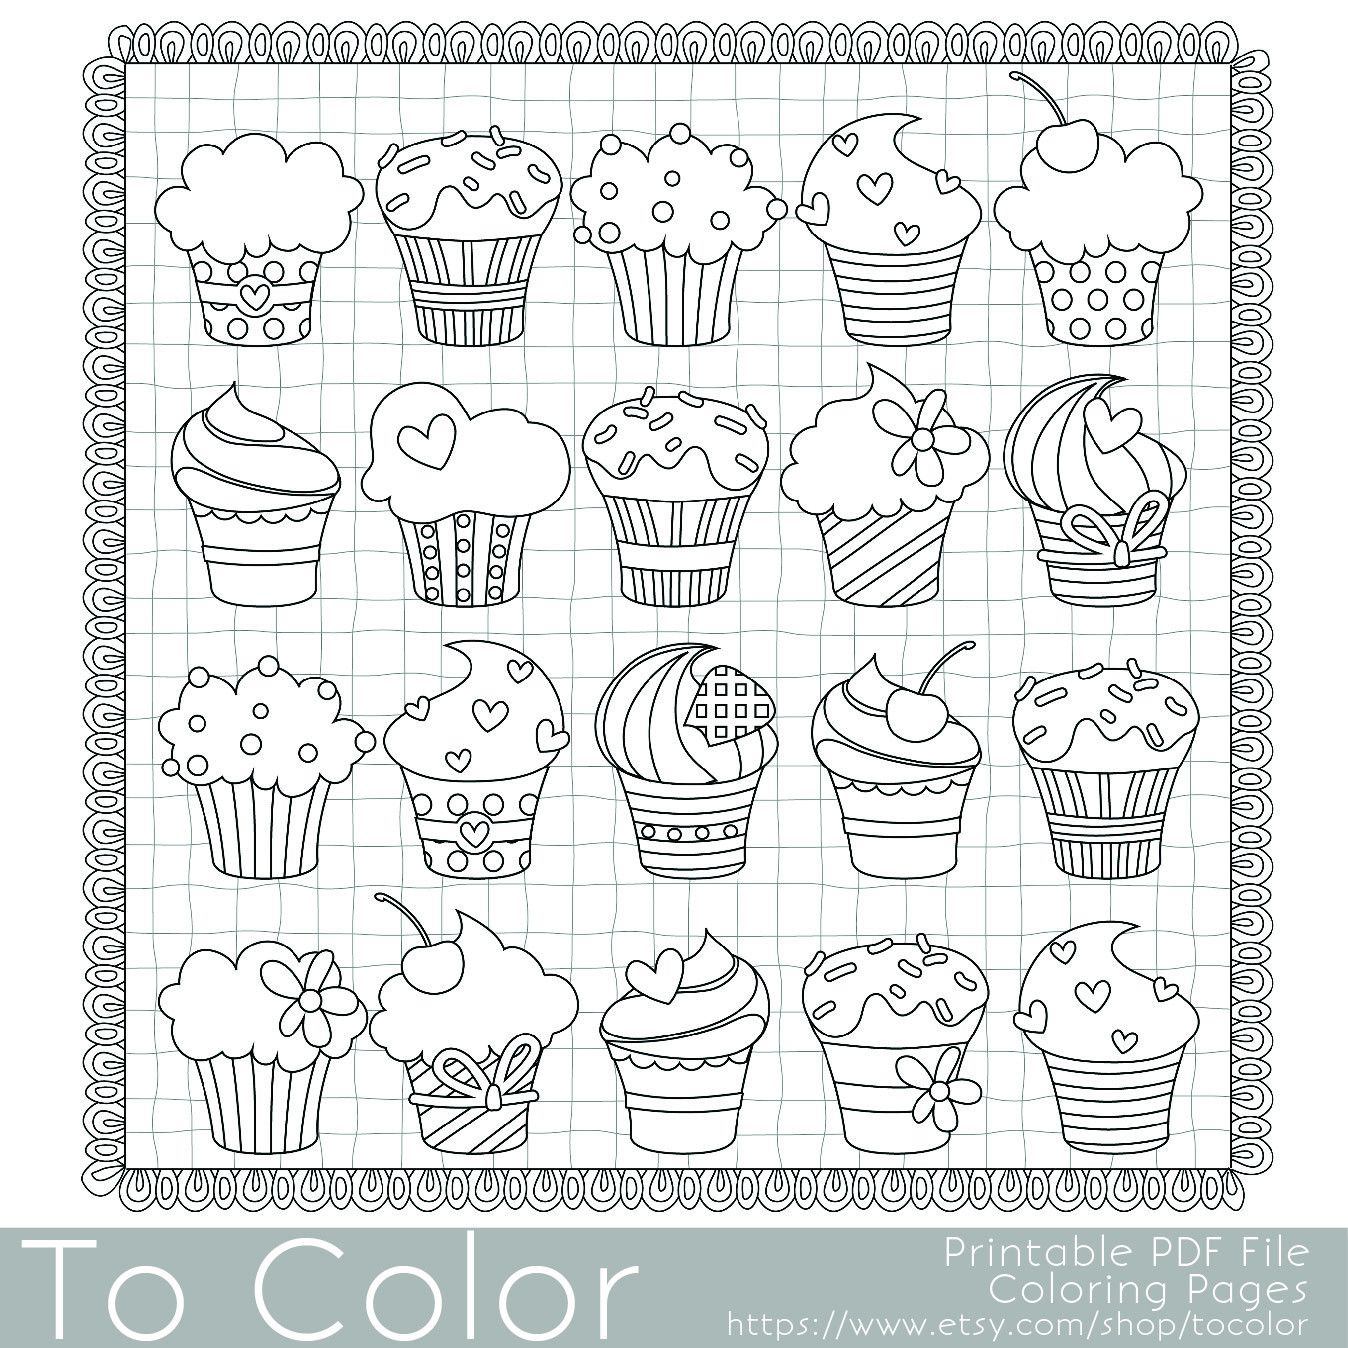 Cupcakes Coloring Page - this is a printable PDF coloring page ...